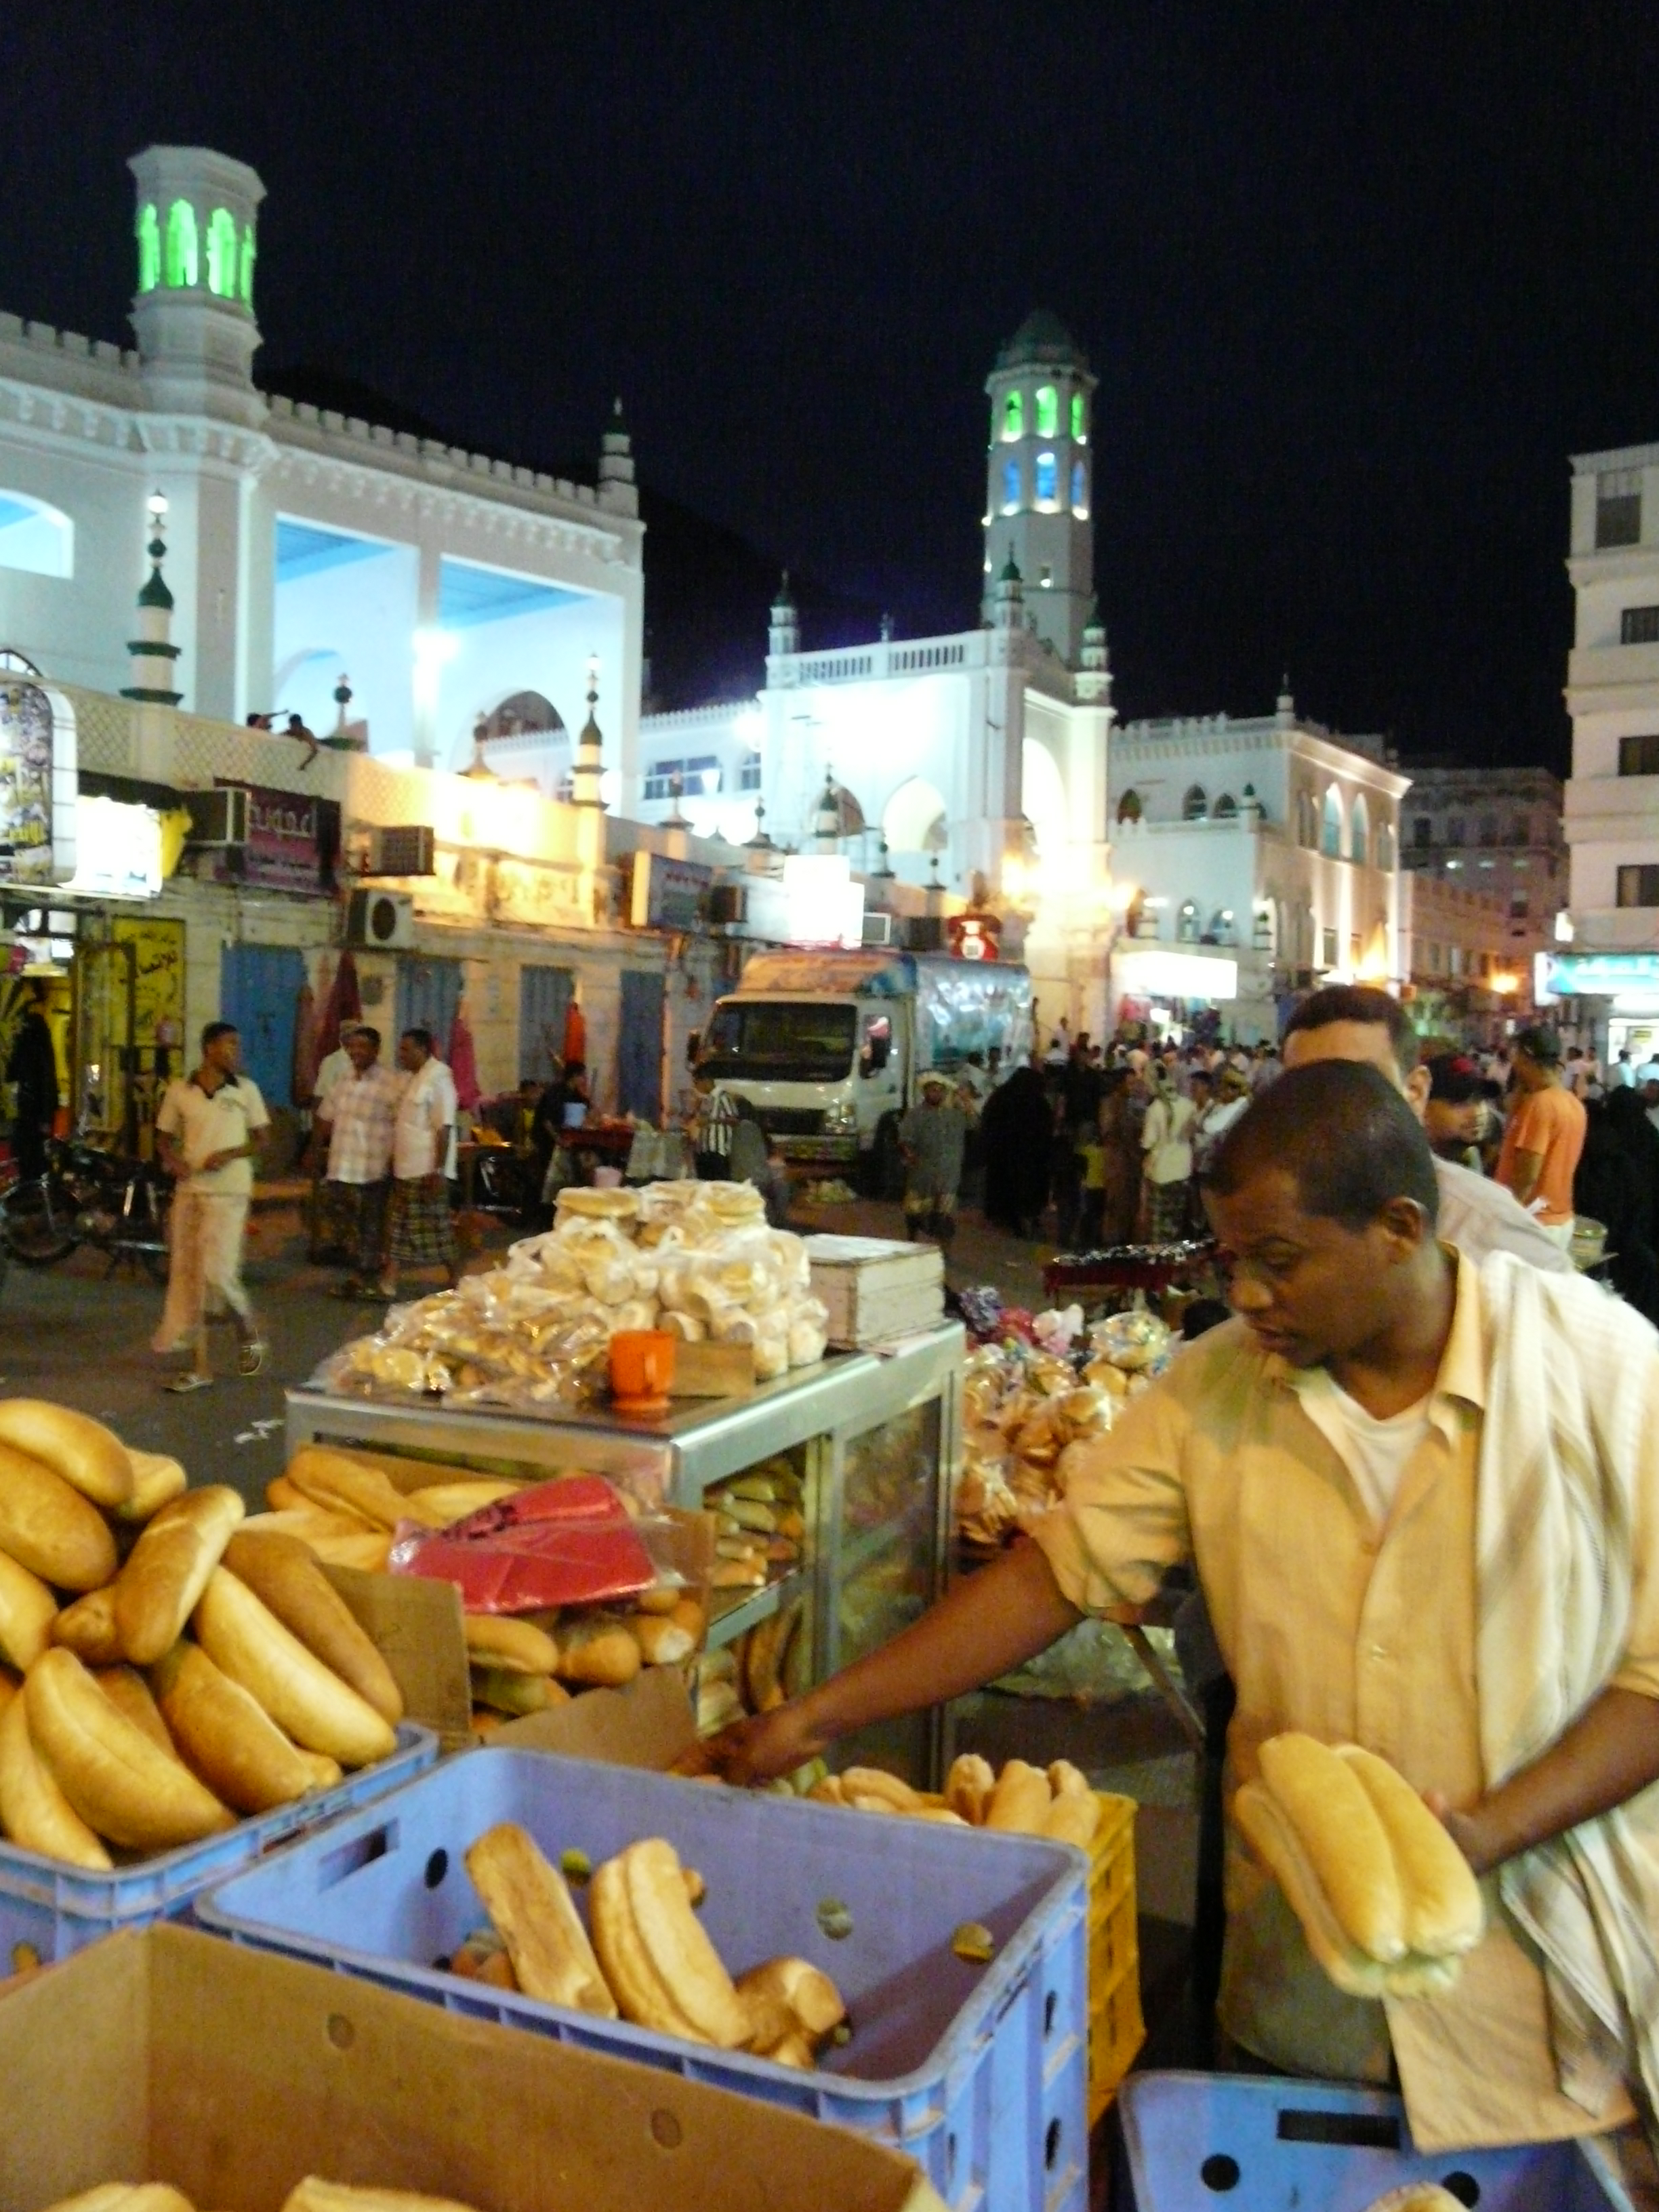 Al Mukalla Square in the Old City of Mukalla_Trading bread in the late evening. Photo taken on February 8, 2010.